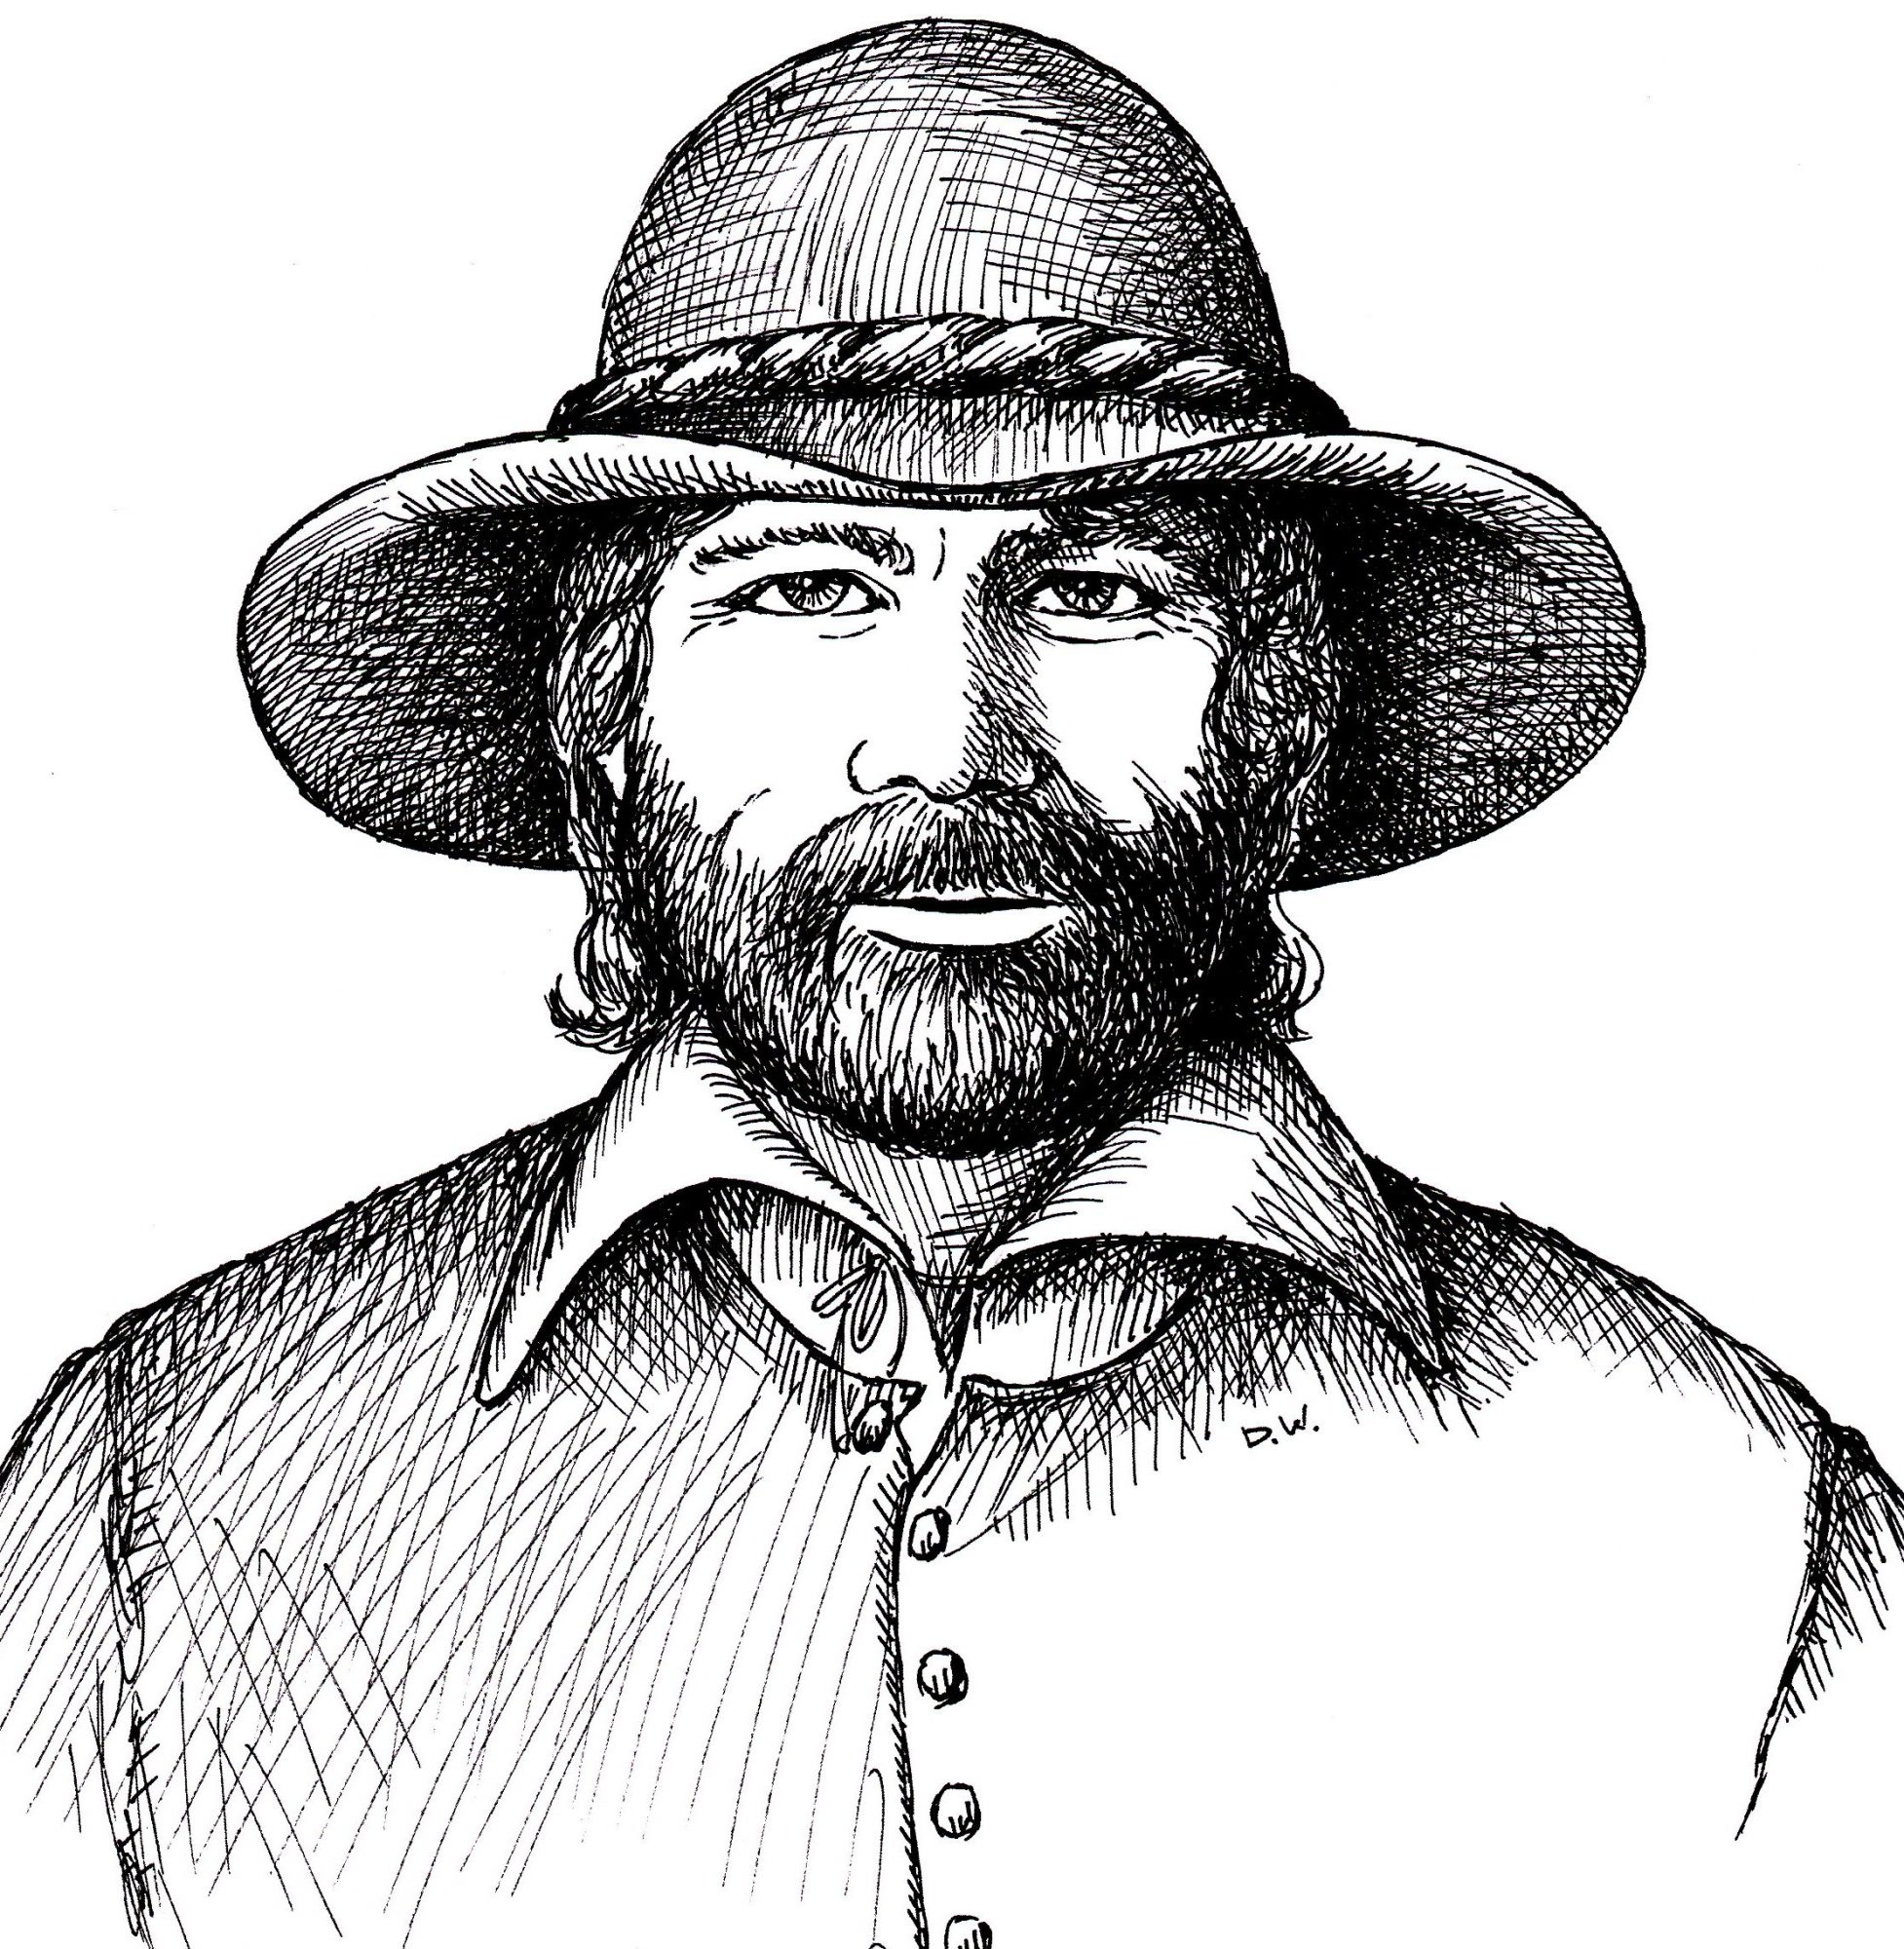 Pen and ink drawing of Governor William Bradford of Plymouth, Massachusetts